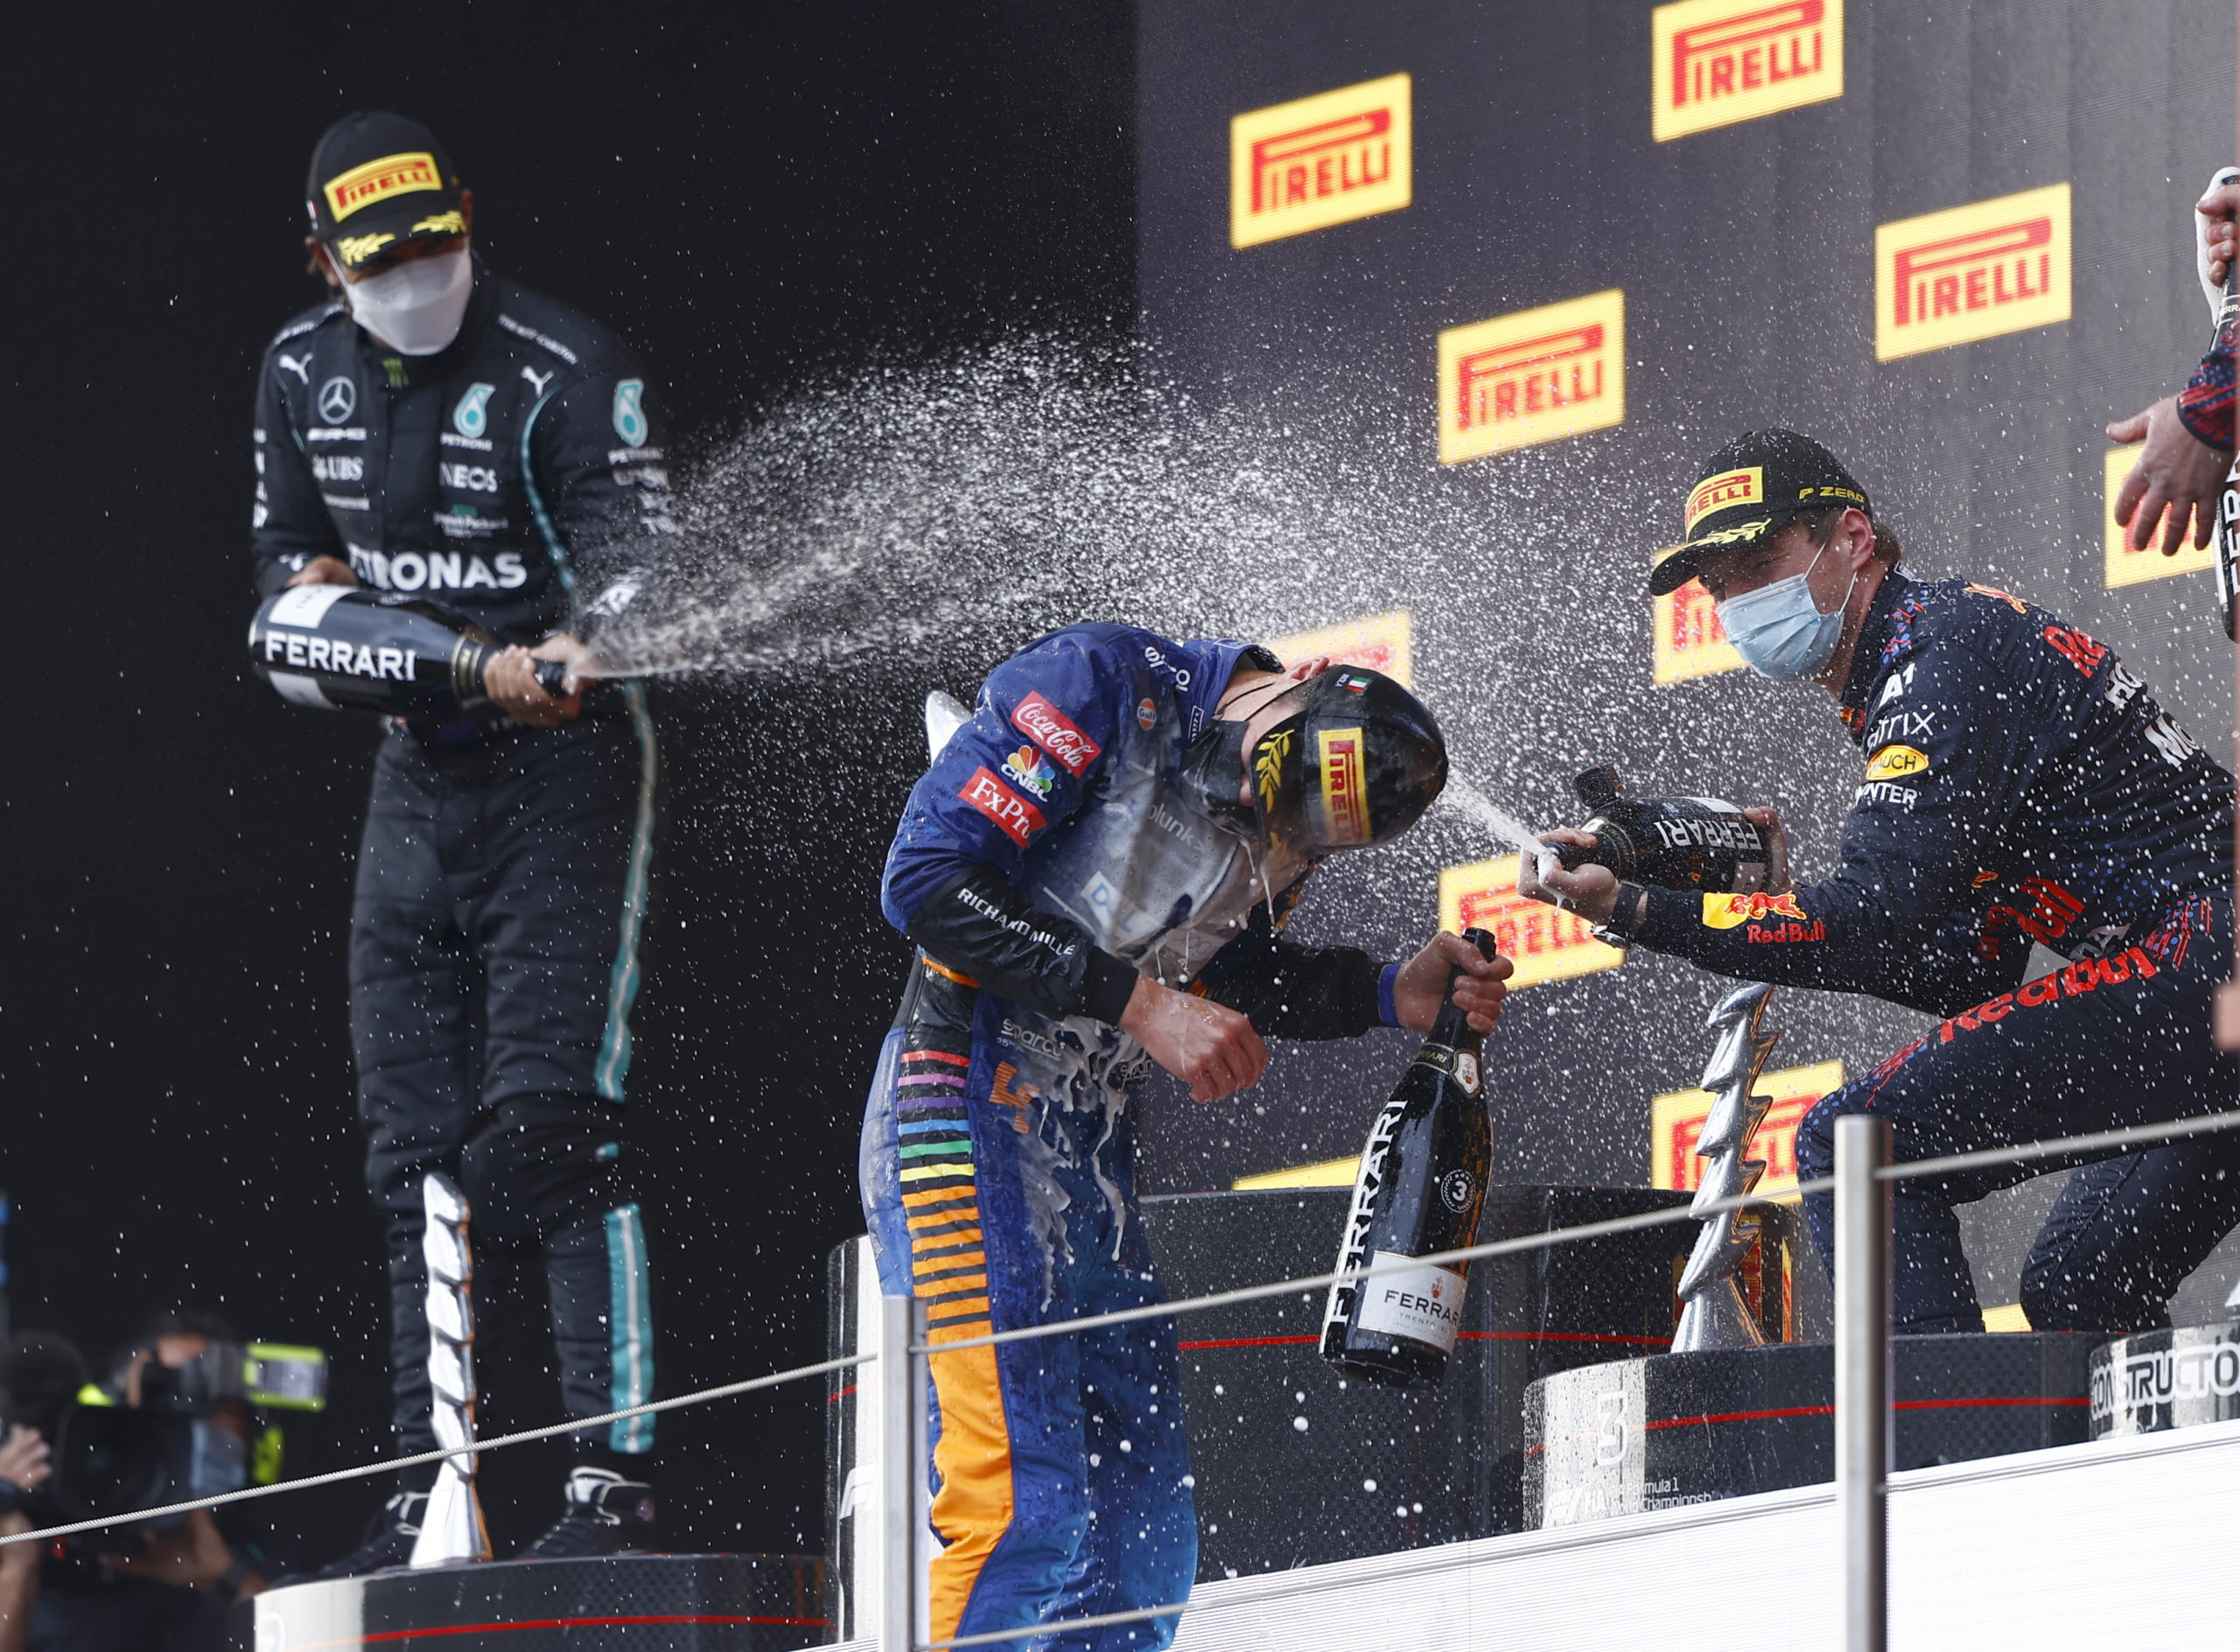 Sir Lewis Hamilton, Mercedes, 2nd position, Max Verstappen, Red Bull Racing, 1st position, Lando Norris, McLaren, 3rd position, and the Red Bull trophy delegate spray Champagne